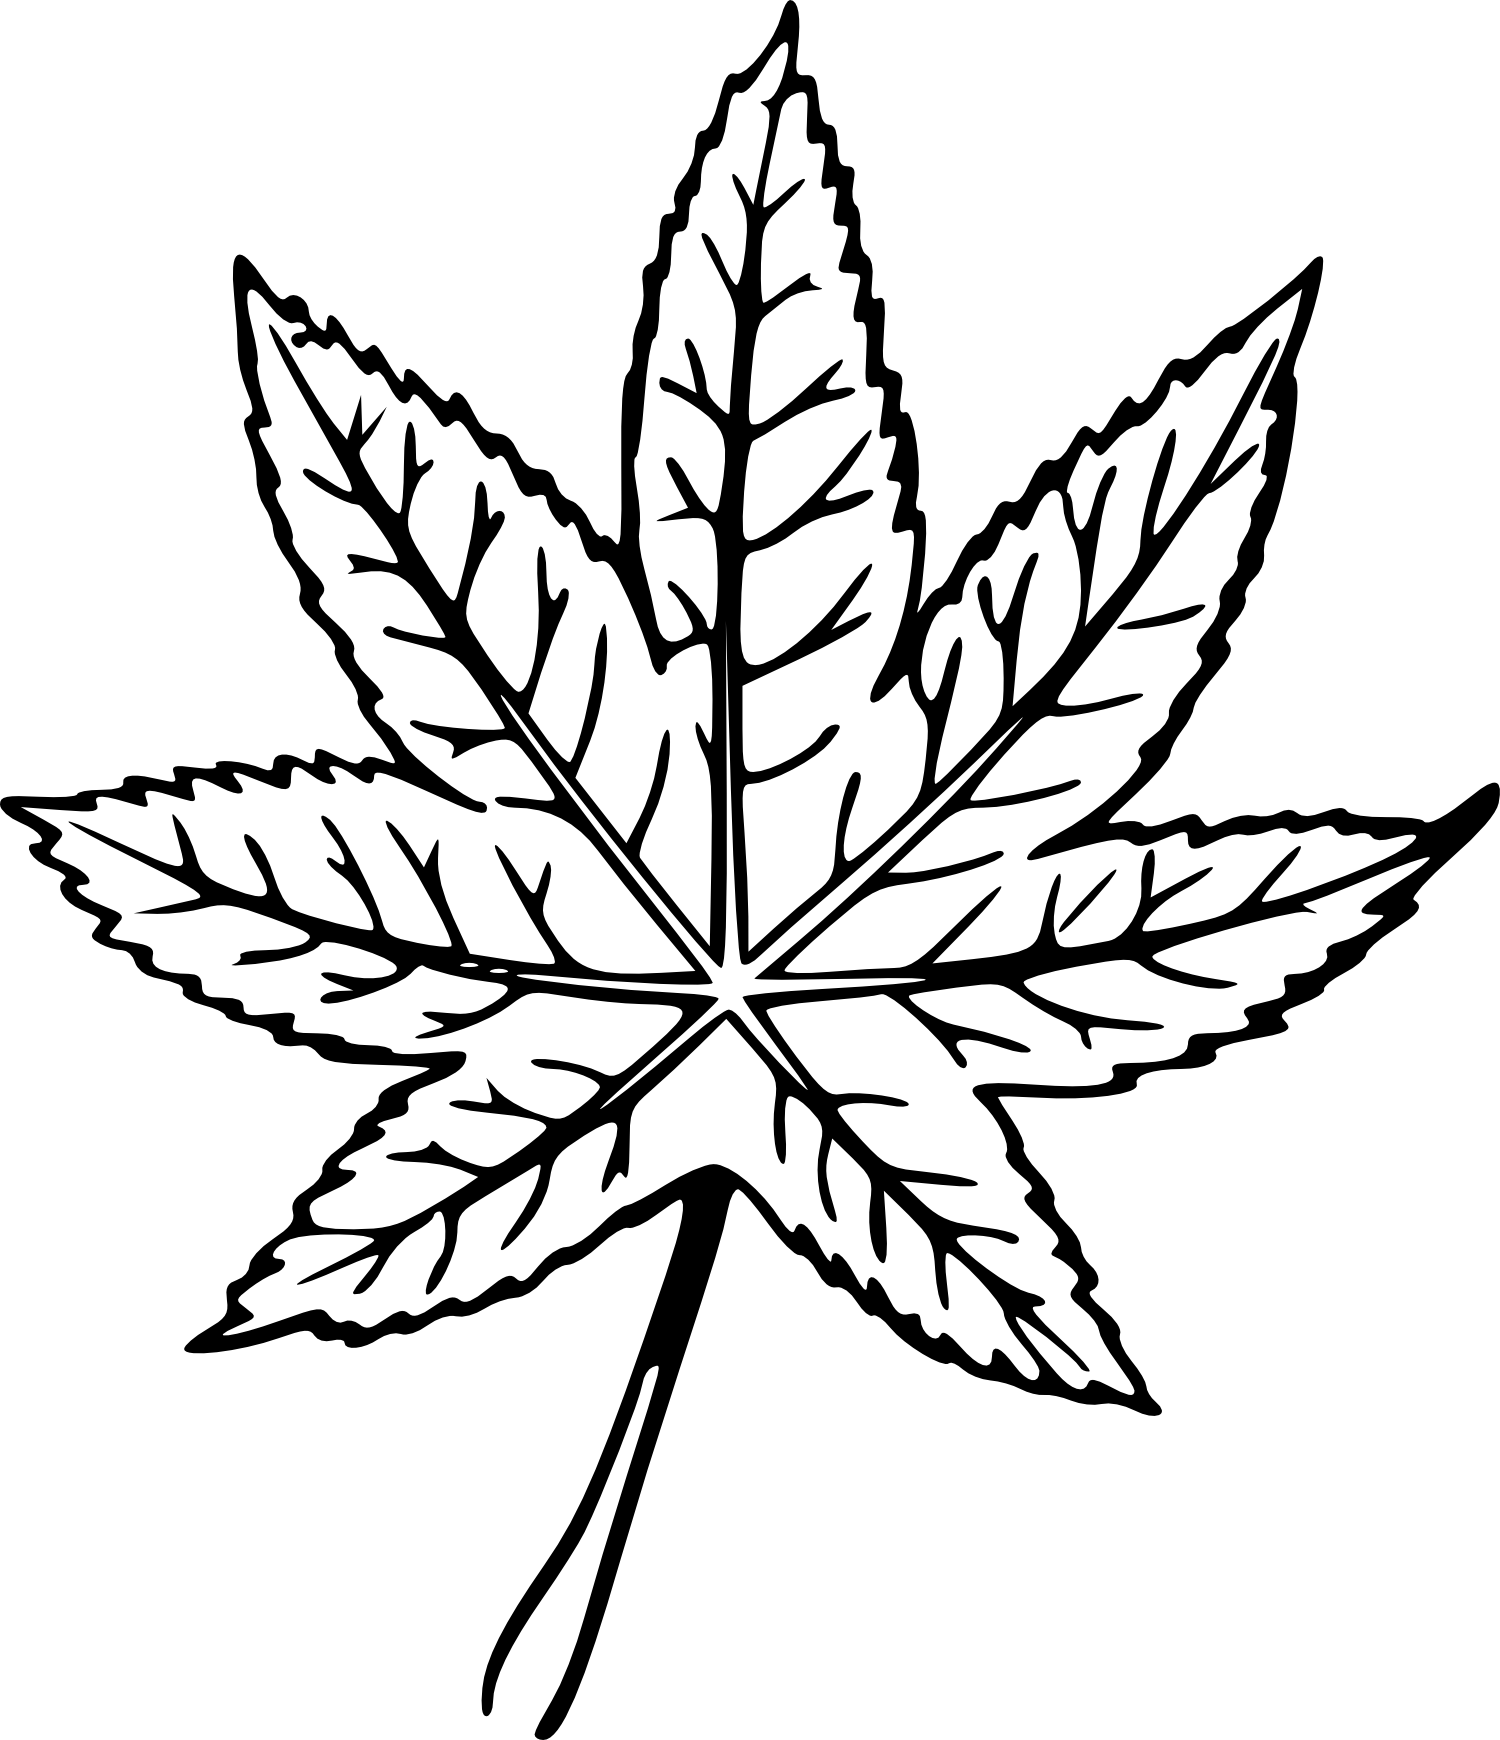 Drawn leaf Png Image Drawn 5 Repulseweb